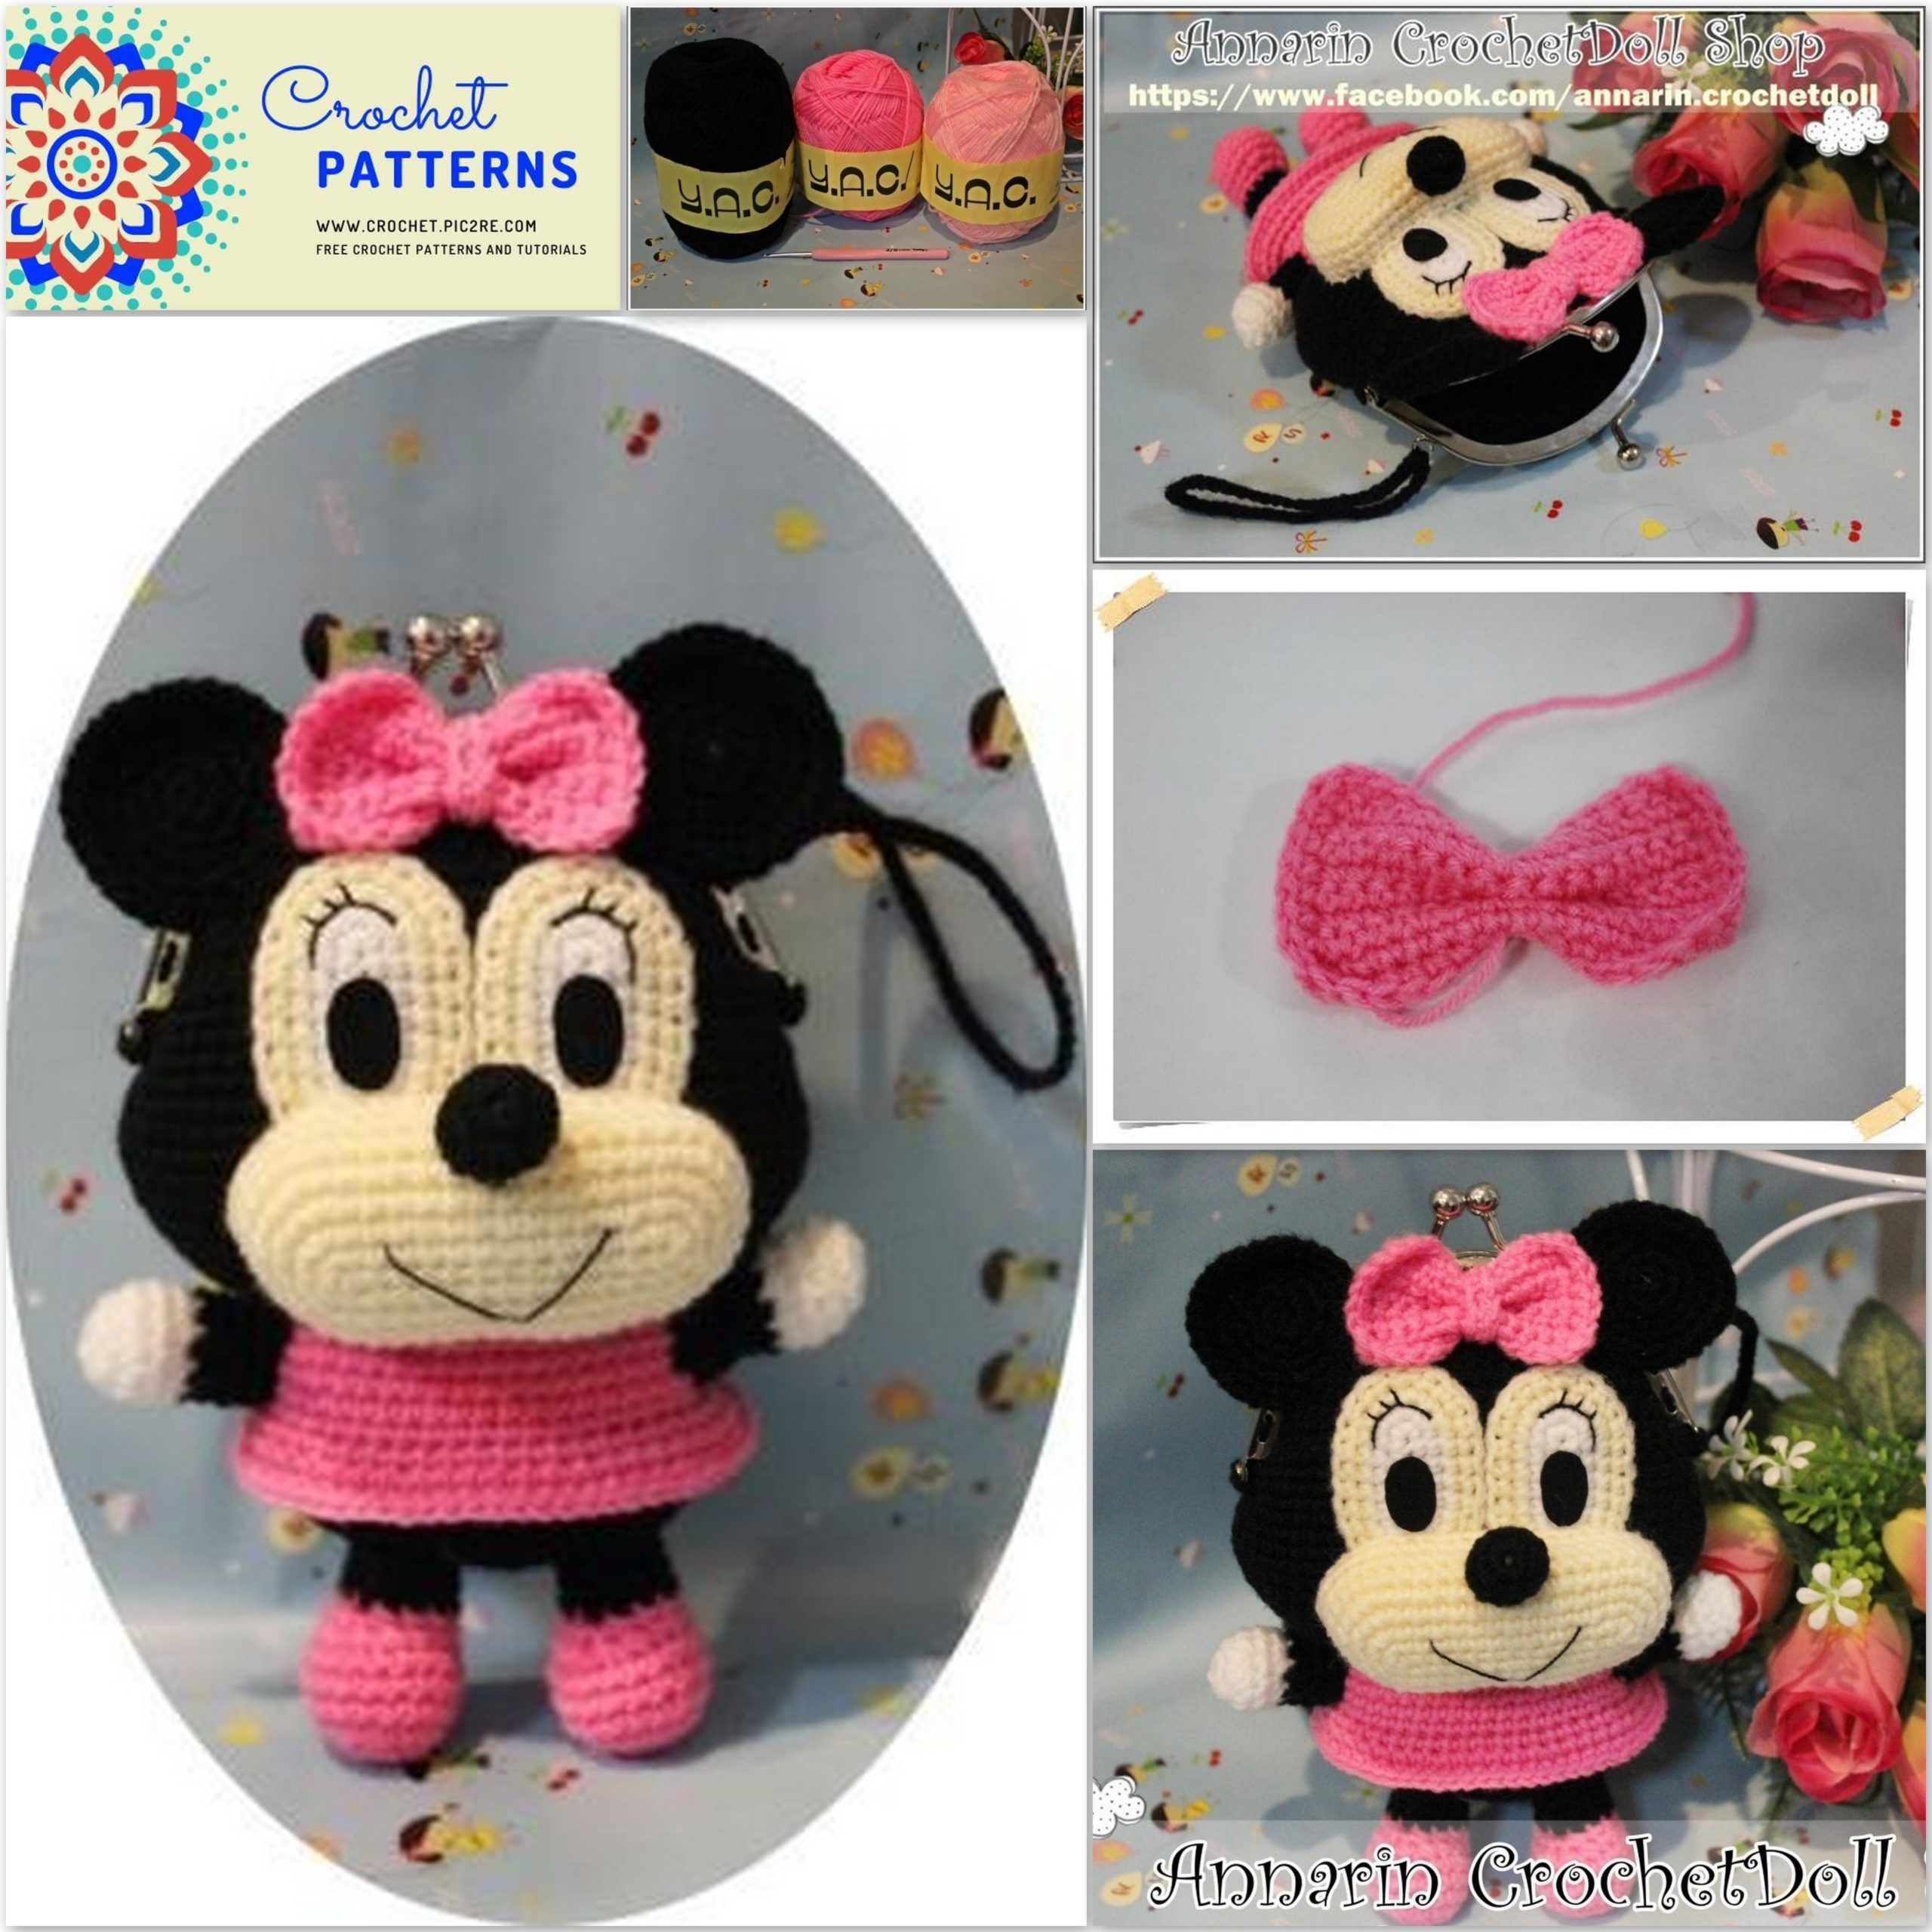 Awesome Minnie Mouse Bonnie Crochet Pattern By HavvaDesigns No.1 ...   2560x2560